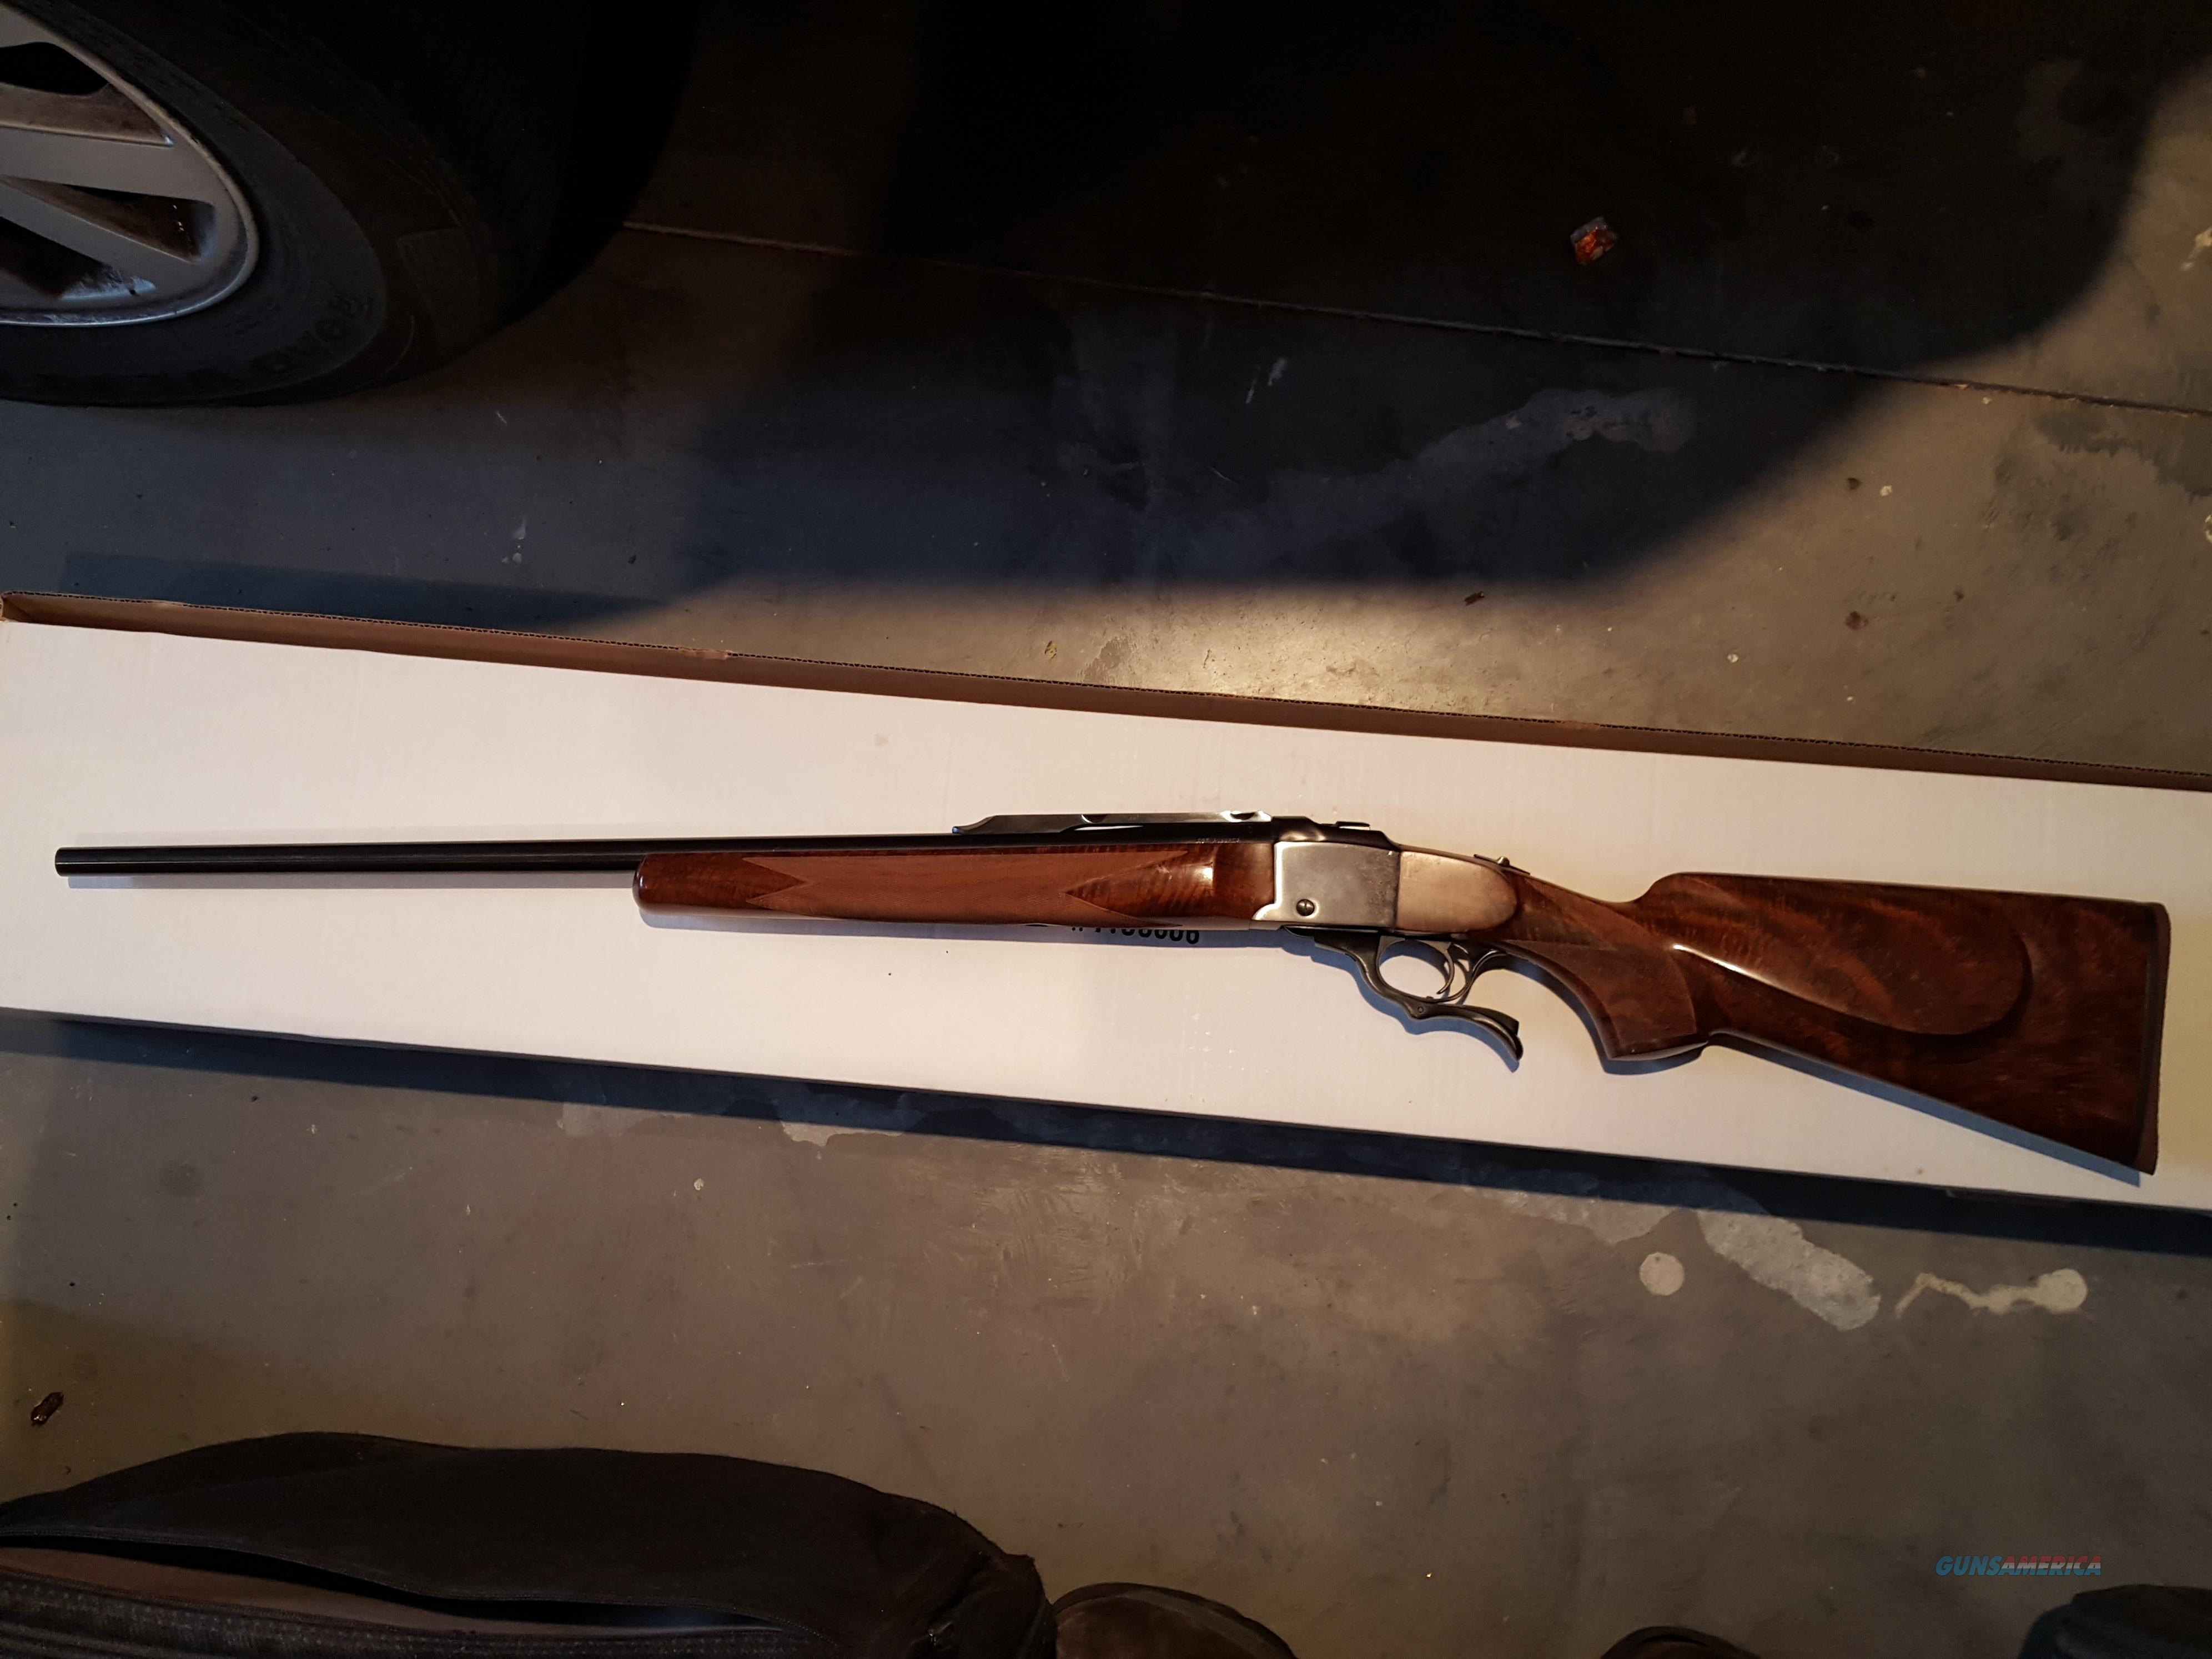 Ruger no 1 257 Roberts w/extra fancy custom wood  Guns > Rifles > Ruger Rifles > #1 Type